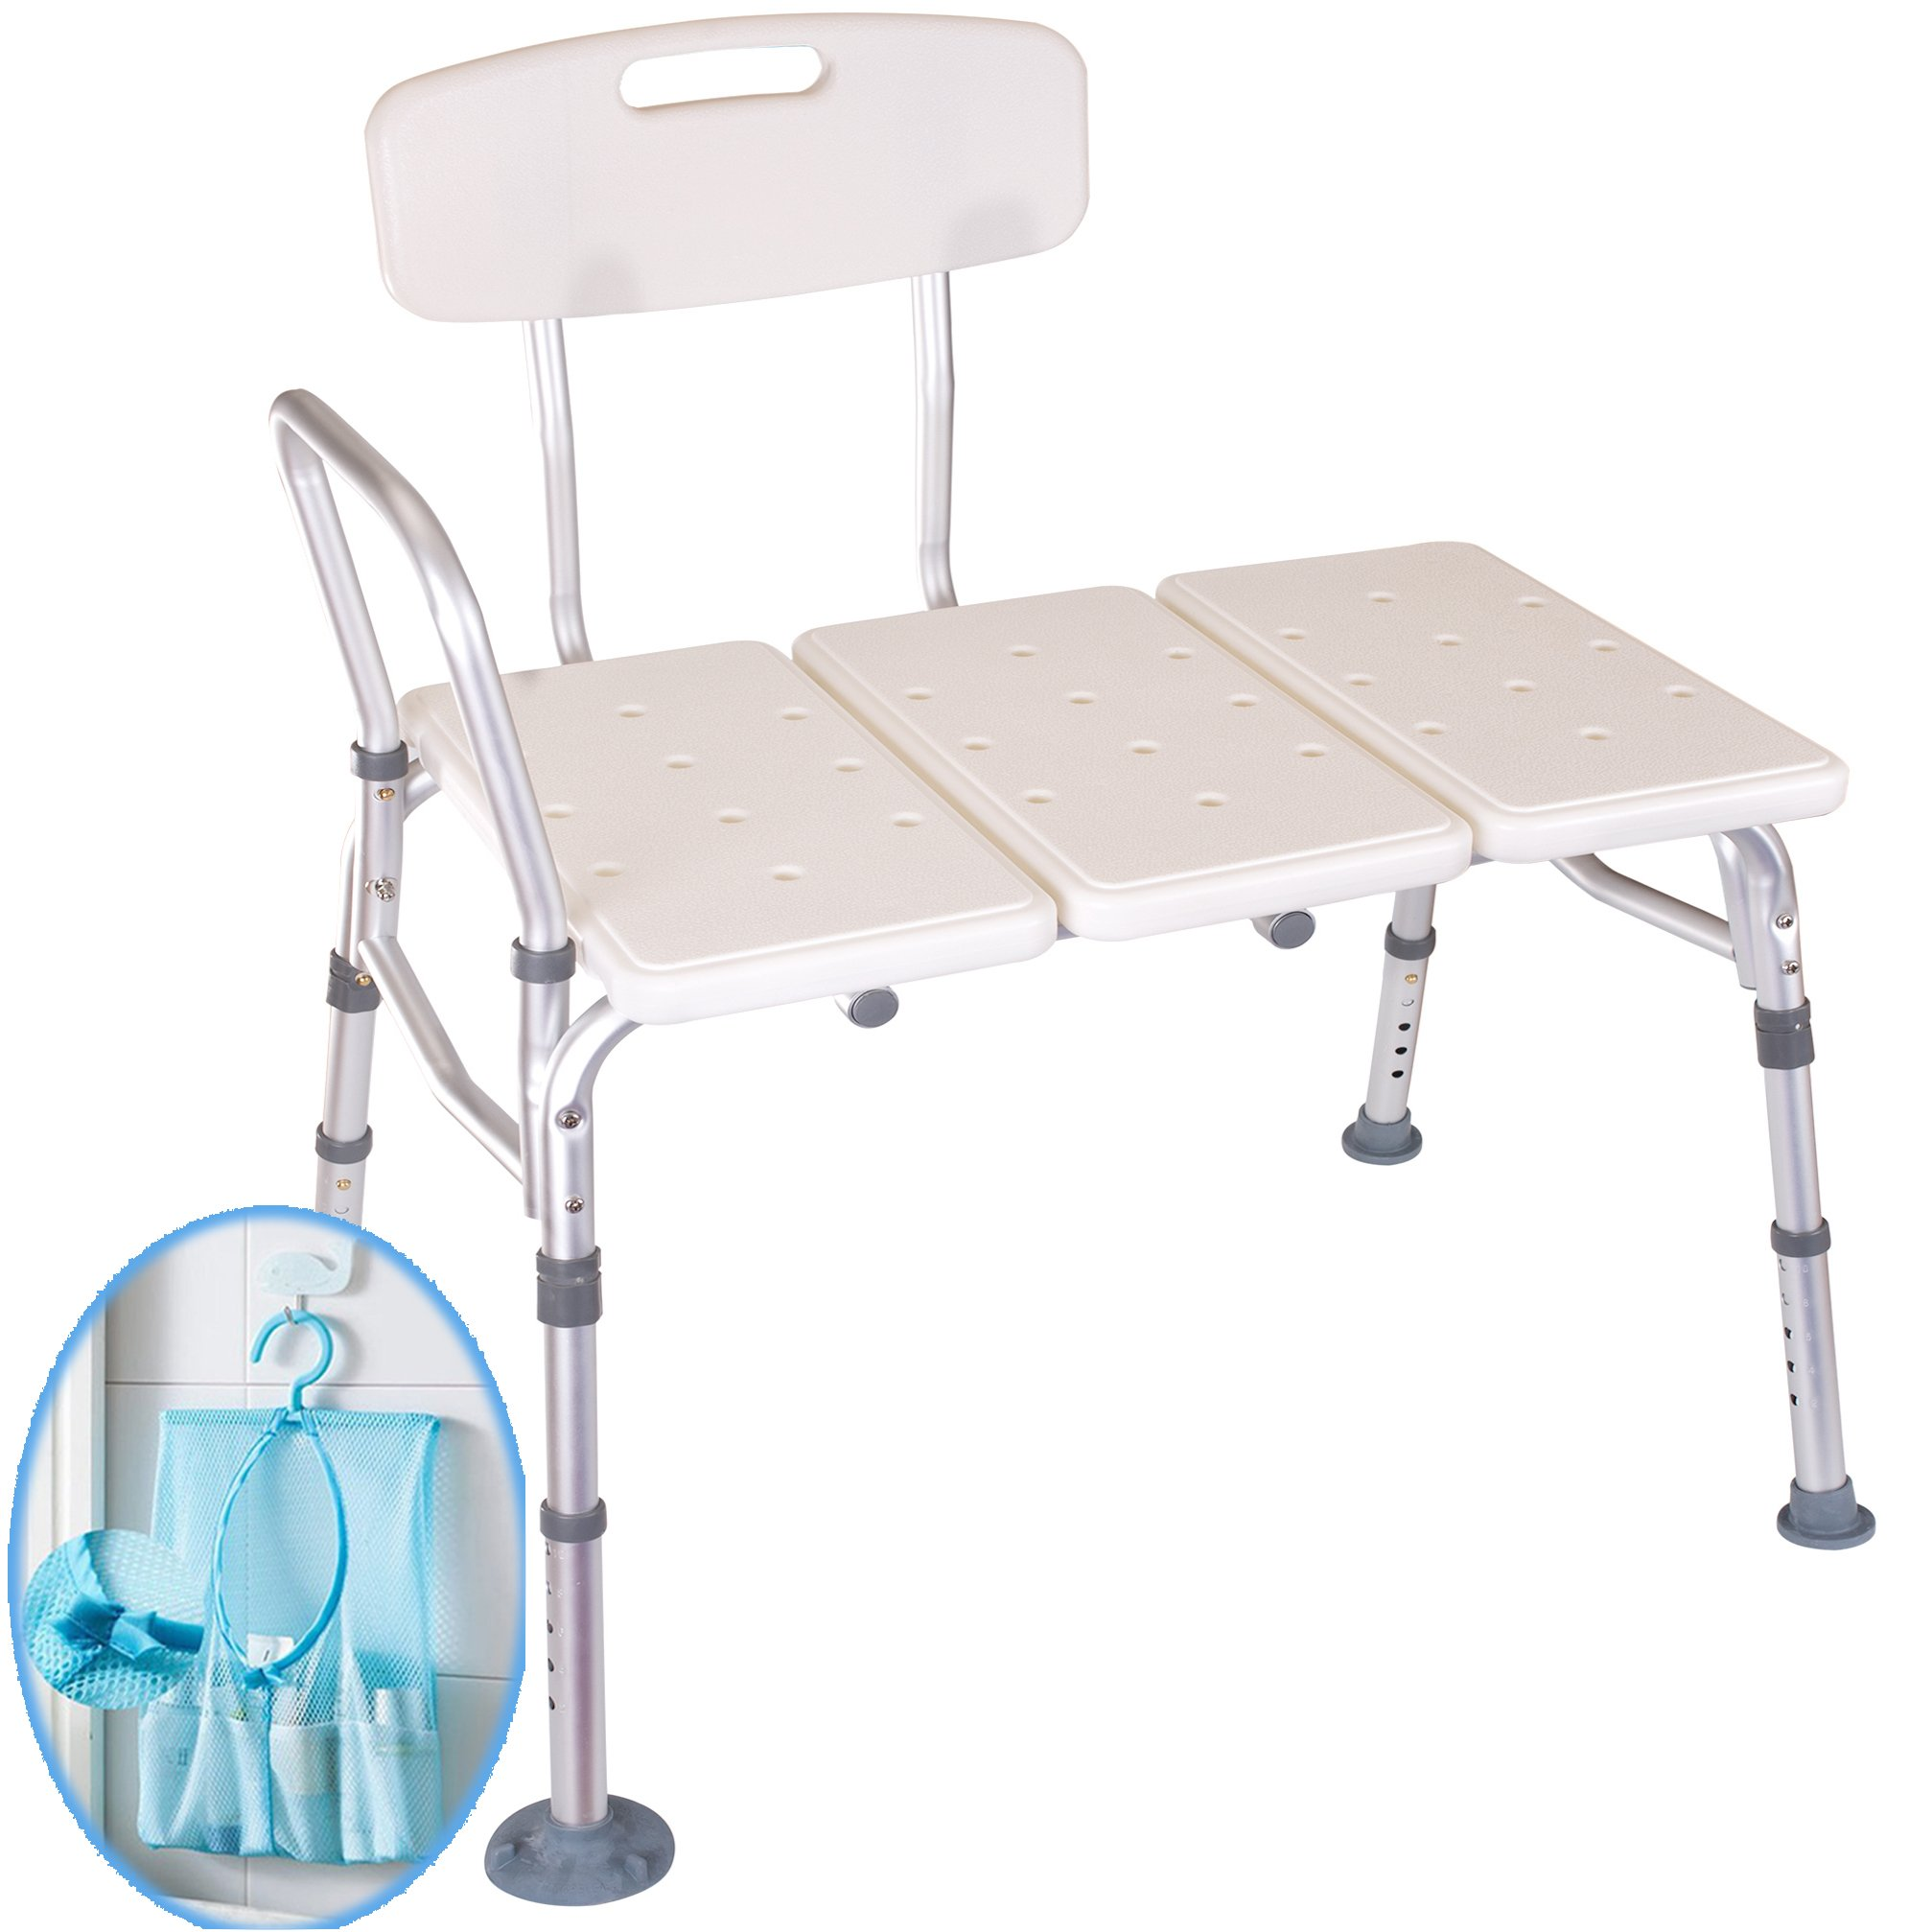 Medokare Tub Transfer Bath Bench - Bath Seat with Shower Tote Bag, Tubside Benches, Handicap Shower Seat for Adults, Elderly Seniors Shower Stool Seats (White Shower Bench) by Medokare